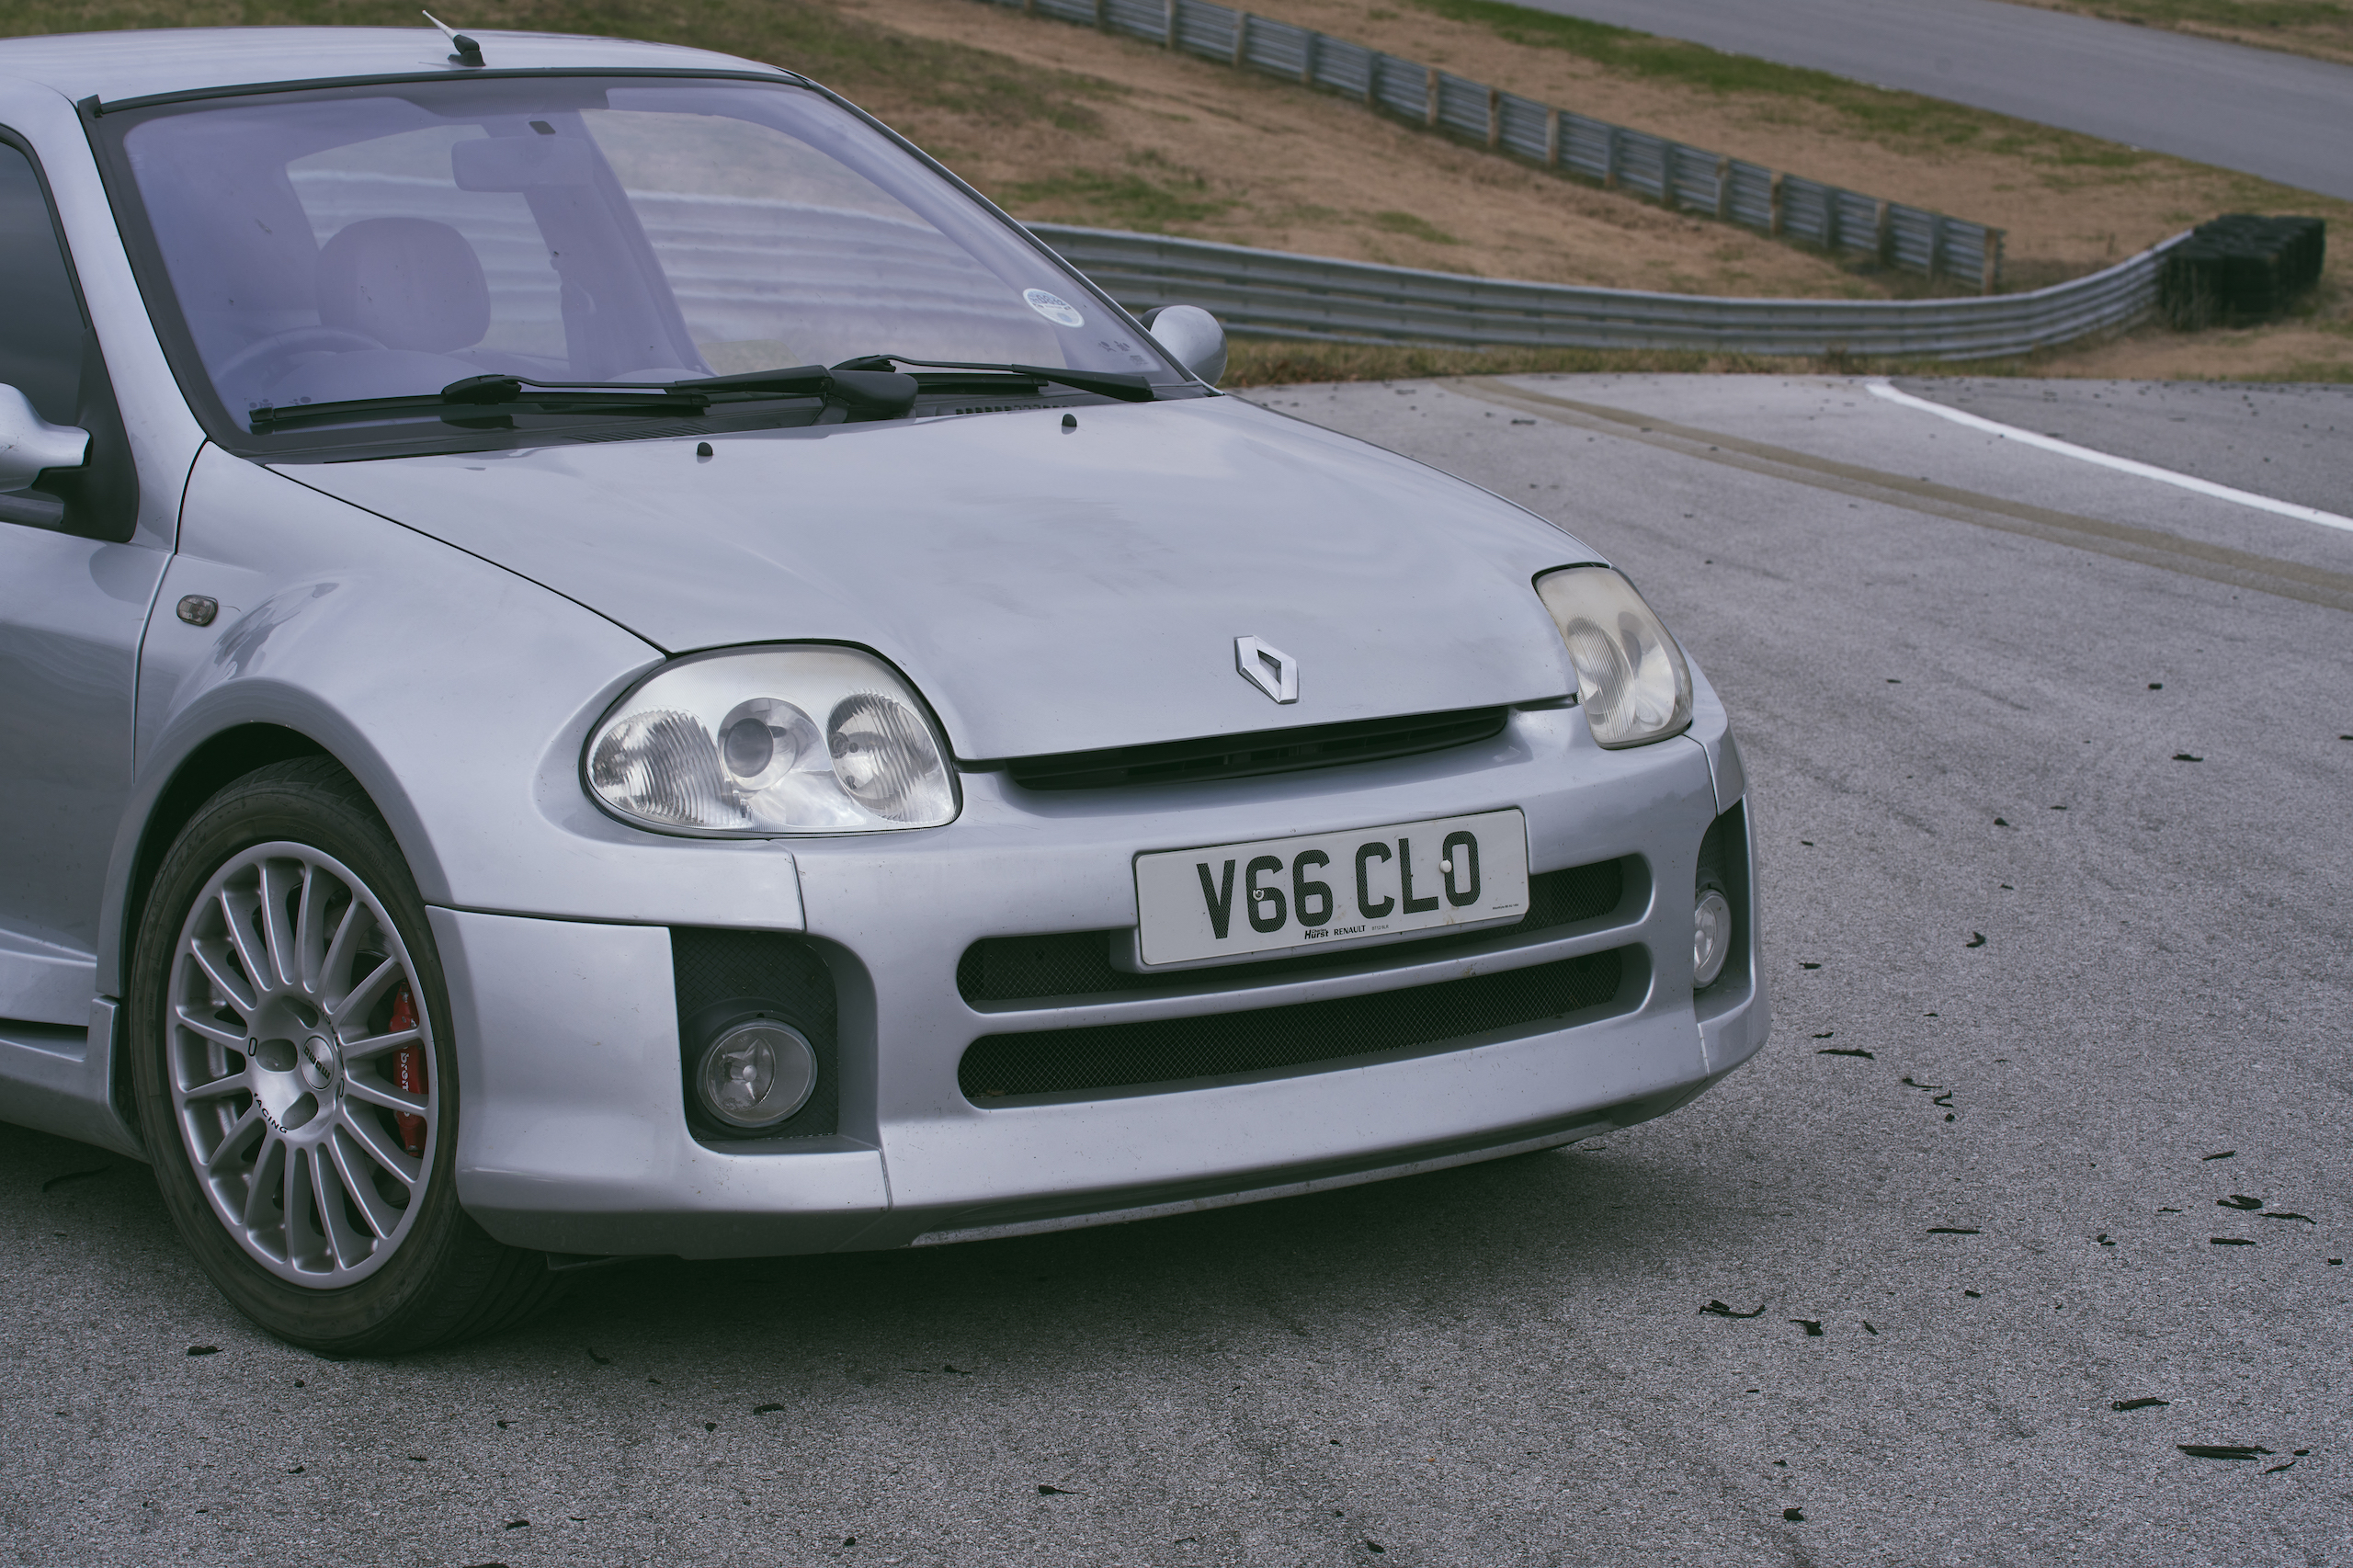 2002 Renault Clio V6 front